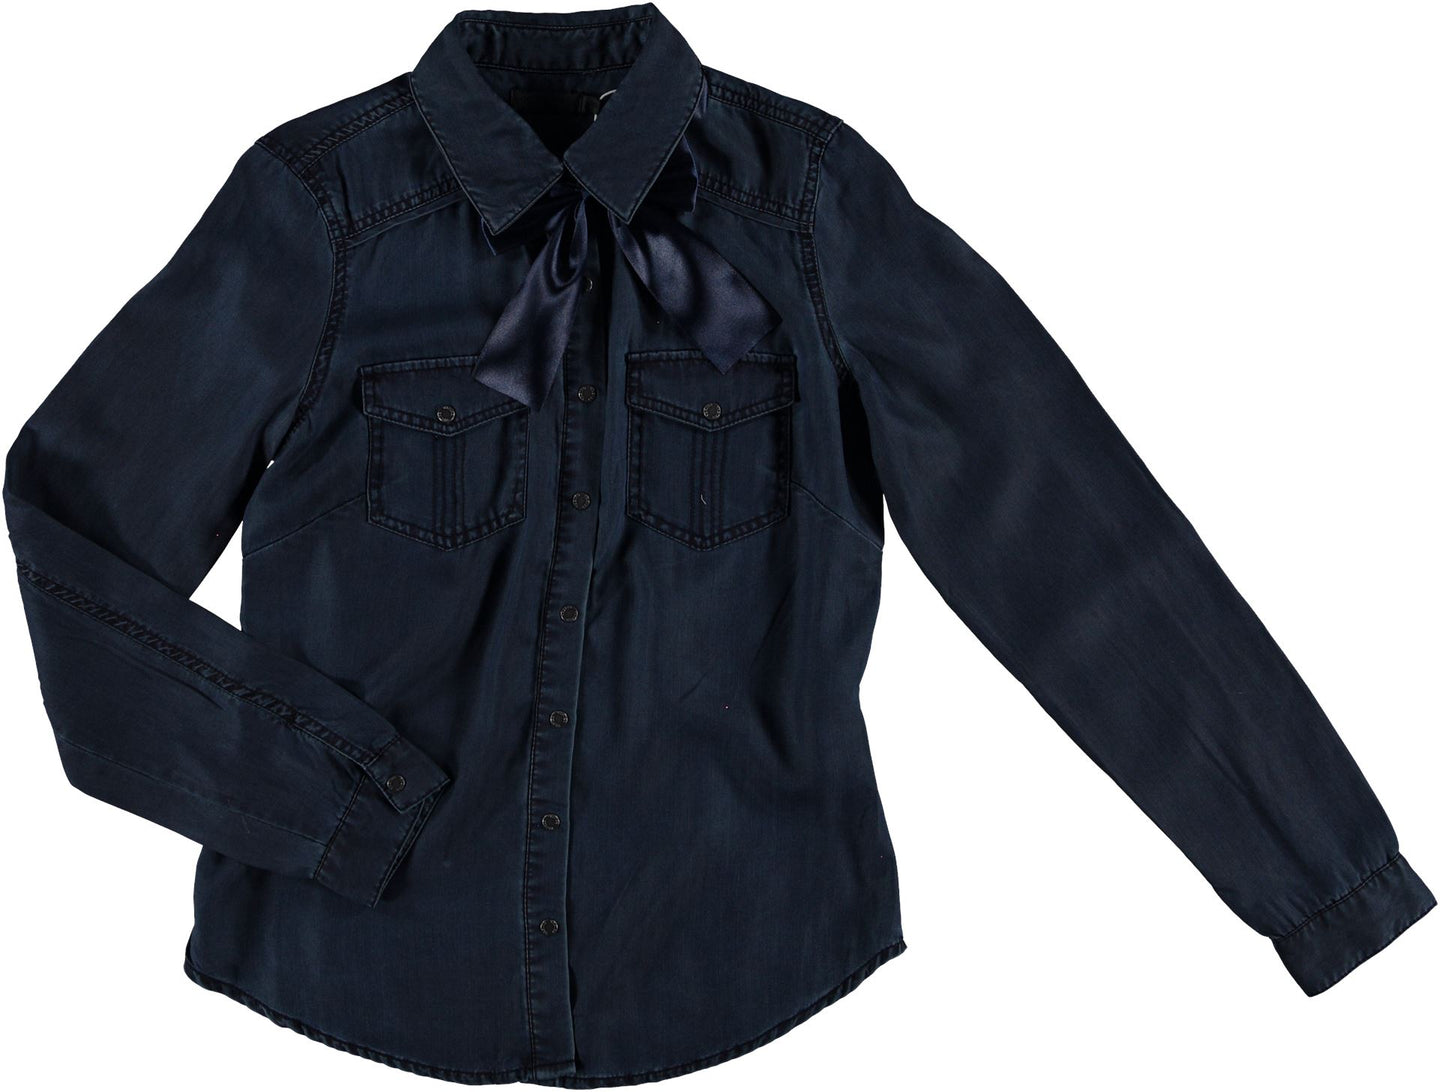 GEISHA - Blouse lyocell - 000880 - dark blue denim